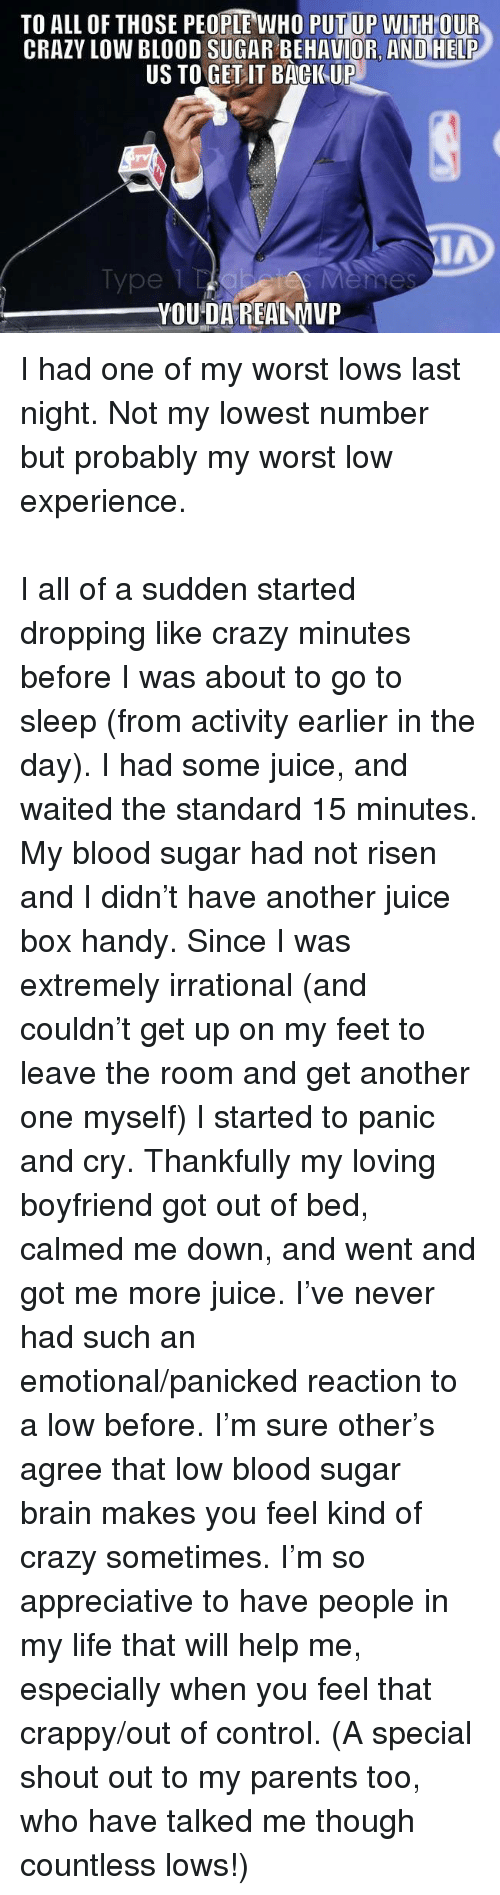 "Another One, Crazy, and Go to Sleep: TO ALL OF THOSE PEOPLE WHO PUT UP WITH OUR  CRAZY LOW BLOOD SUGAR BEHAVIOR, AND HELP  US TO GET IT BACIKUP  IA  Type 1  YOU DA REANMVP <p><span>I had one of my worst lows last night. Not my lowest number but probably my worst low experience.</span><br/><br/><span>I all of a sudden started dropping like crazy minutes before I was about to go to sleep (from activity earlier in the day). I had some juice, and waited the standard 15 minutes. My blood sugar had not risen and I didn't have another juice box handy. Since I was extremely irrational (and couldn't ge</span><span class=""text_exposed_show"">t up on my feet to leave the room and get another one myself) I started to panic and cry. Thankfully my loving boyfriend got out of bed, calmed me down, and went and got me more juice. I've never had such an emotional/panicked reaction to a low before. I'm sure other's agree that low blood sugar brain makes you feel kind of crazy sometimes. I'm so appreciative to have people in my life that will help me, especially when you feel that crappy/out of control. (A special shout out to my parents too, who have talked me though countless lows!) <br/></span></p>"